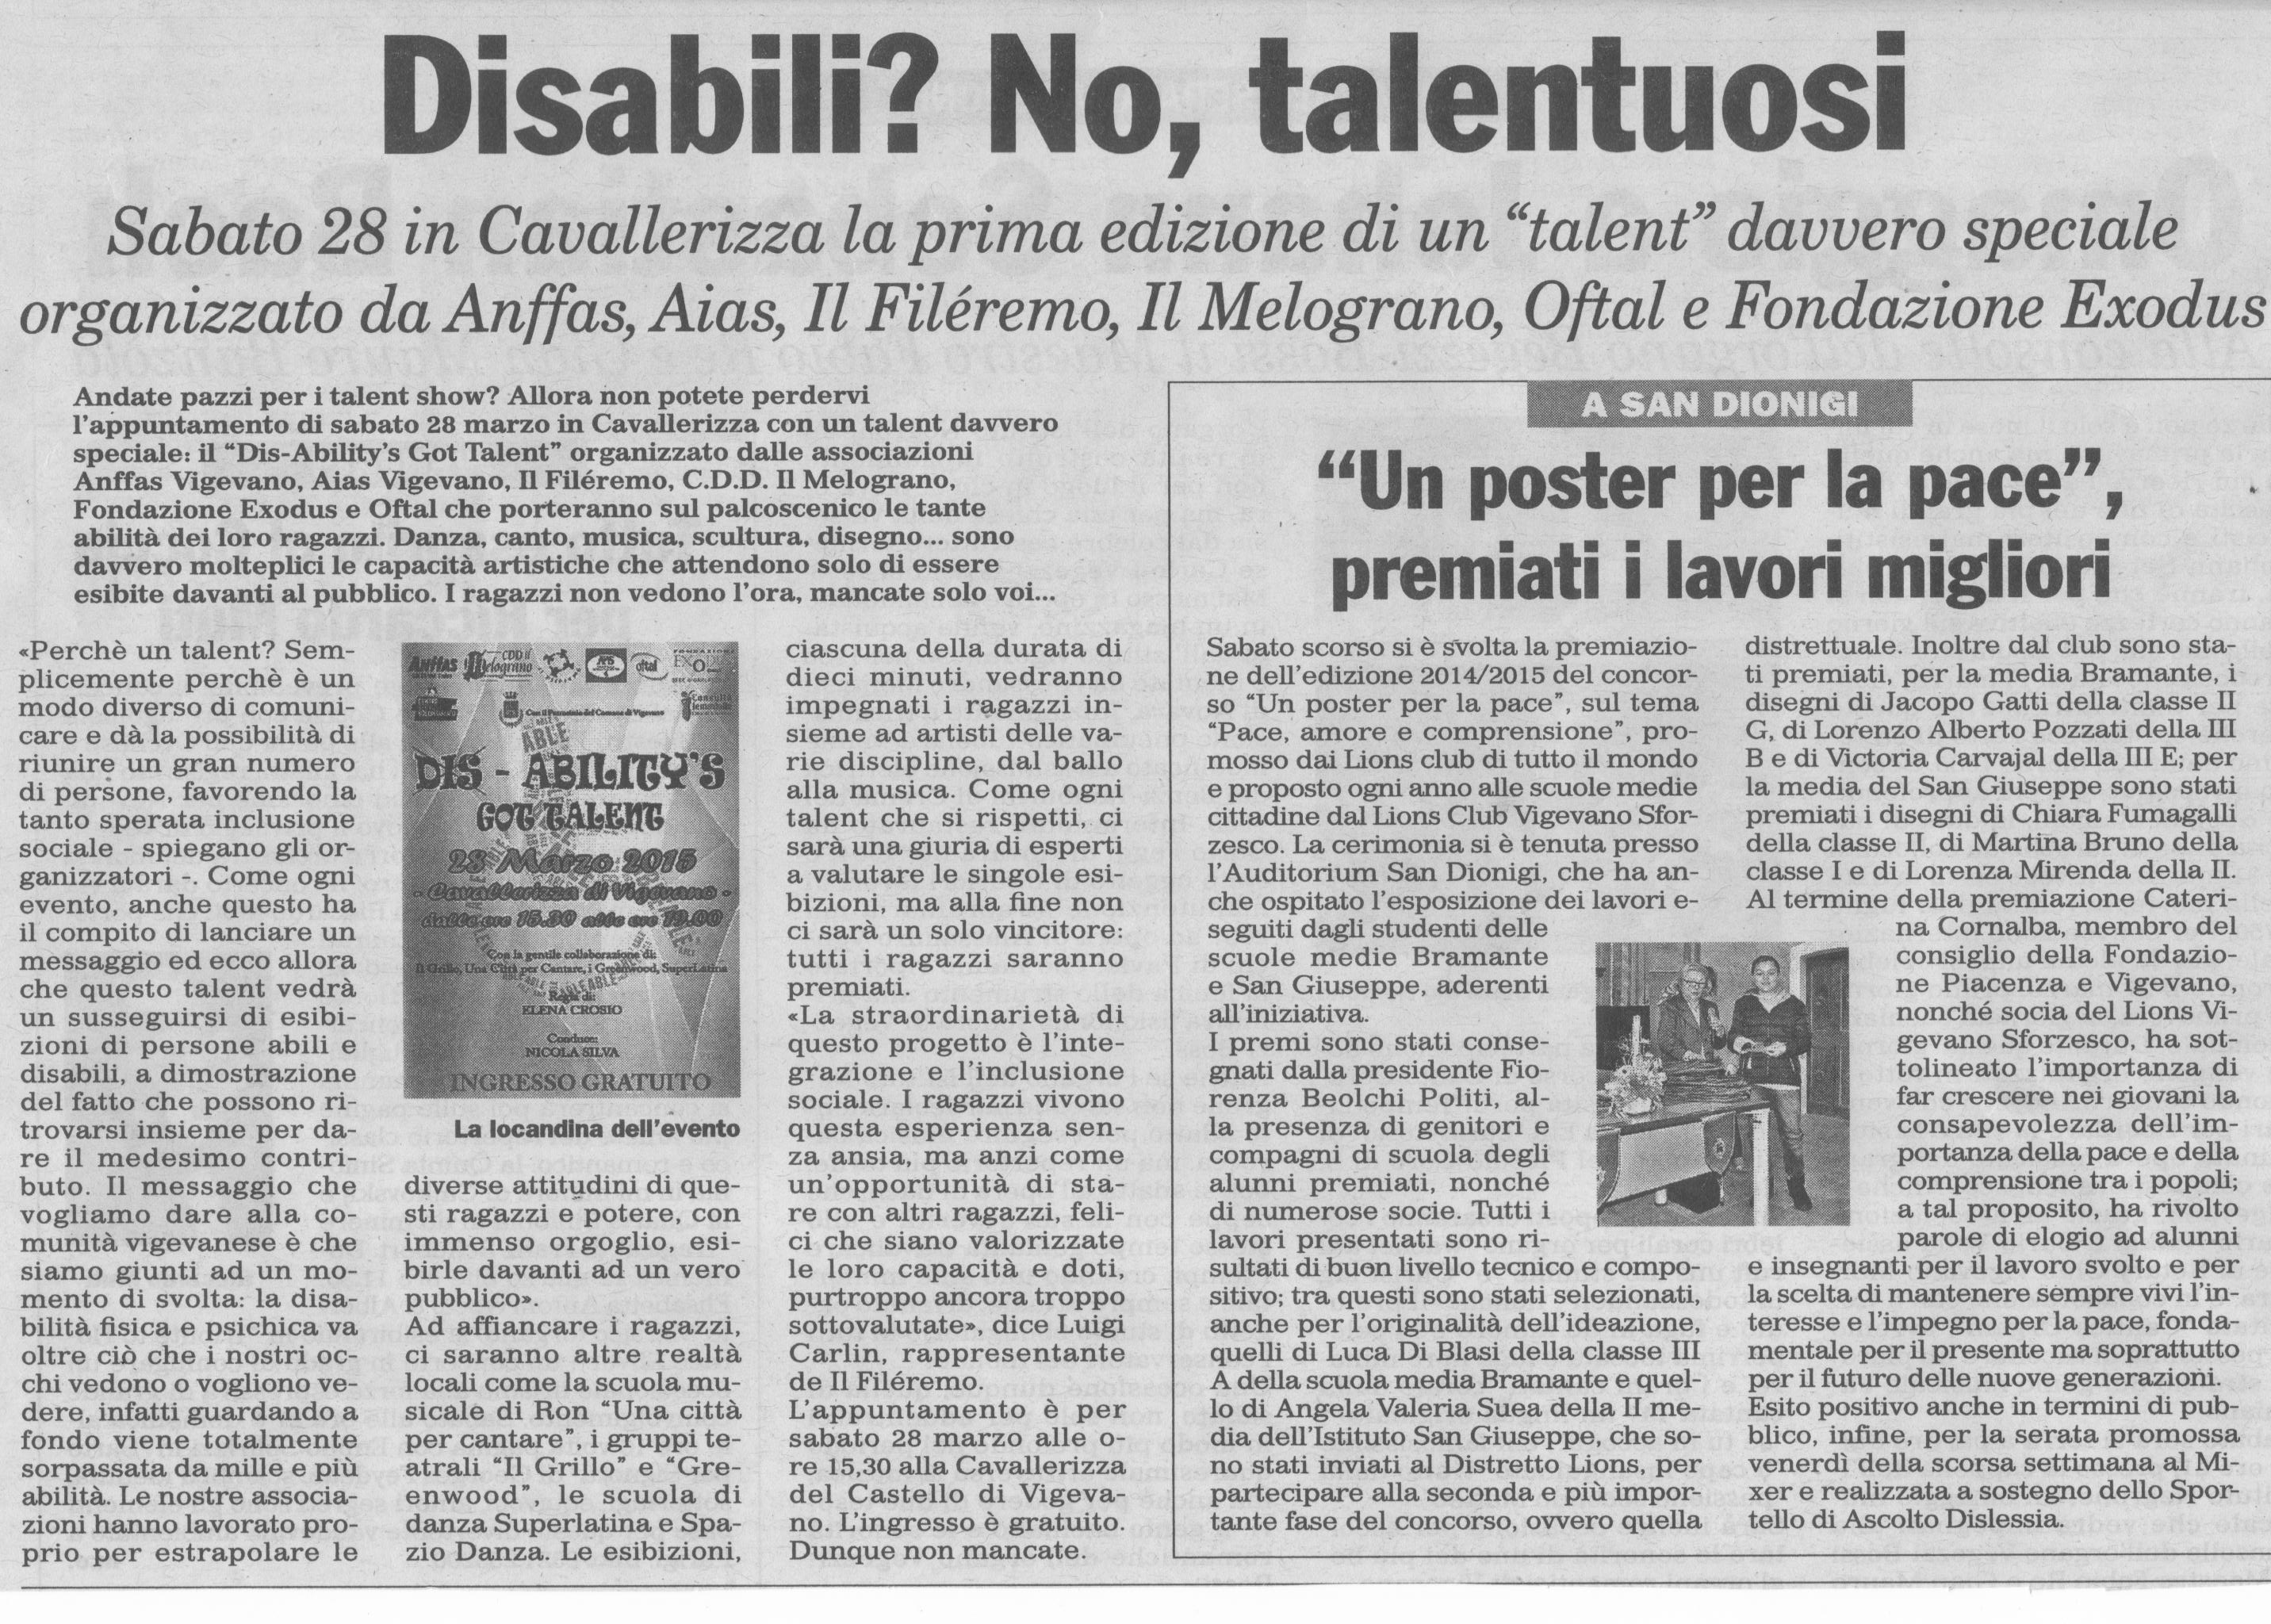 Talent Dis-Ability (Marco Clerici in giuria)